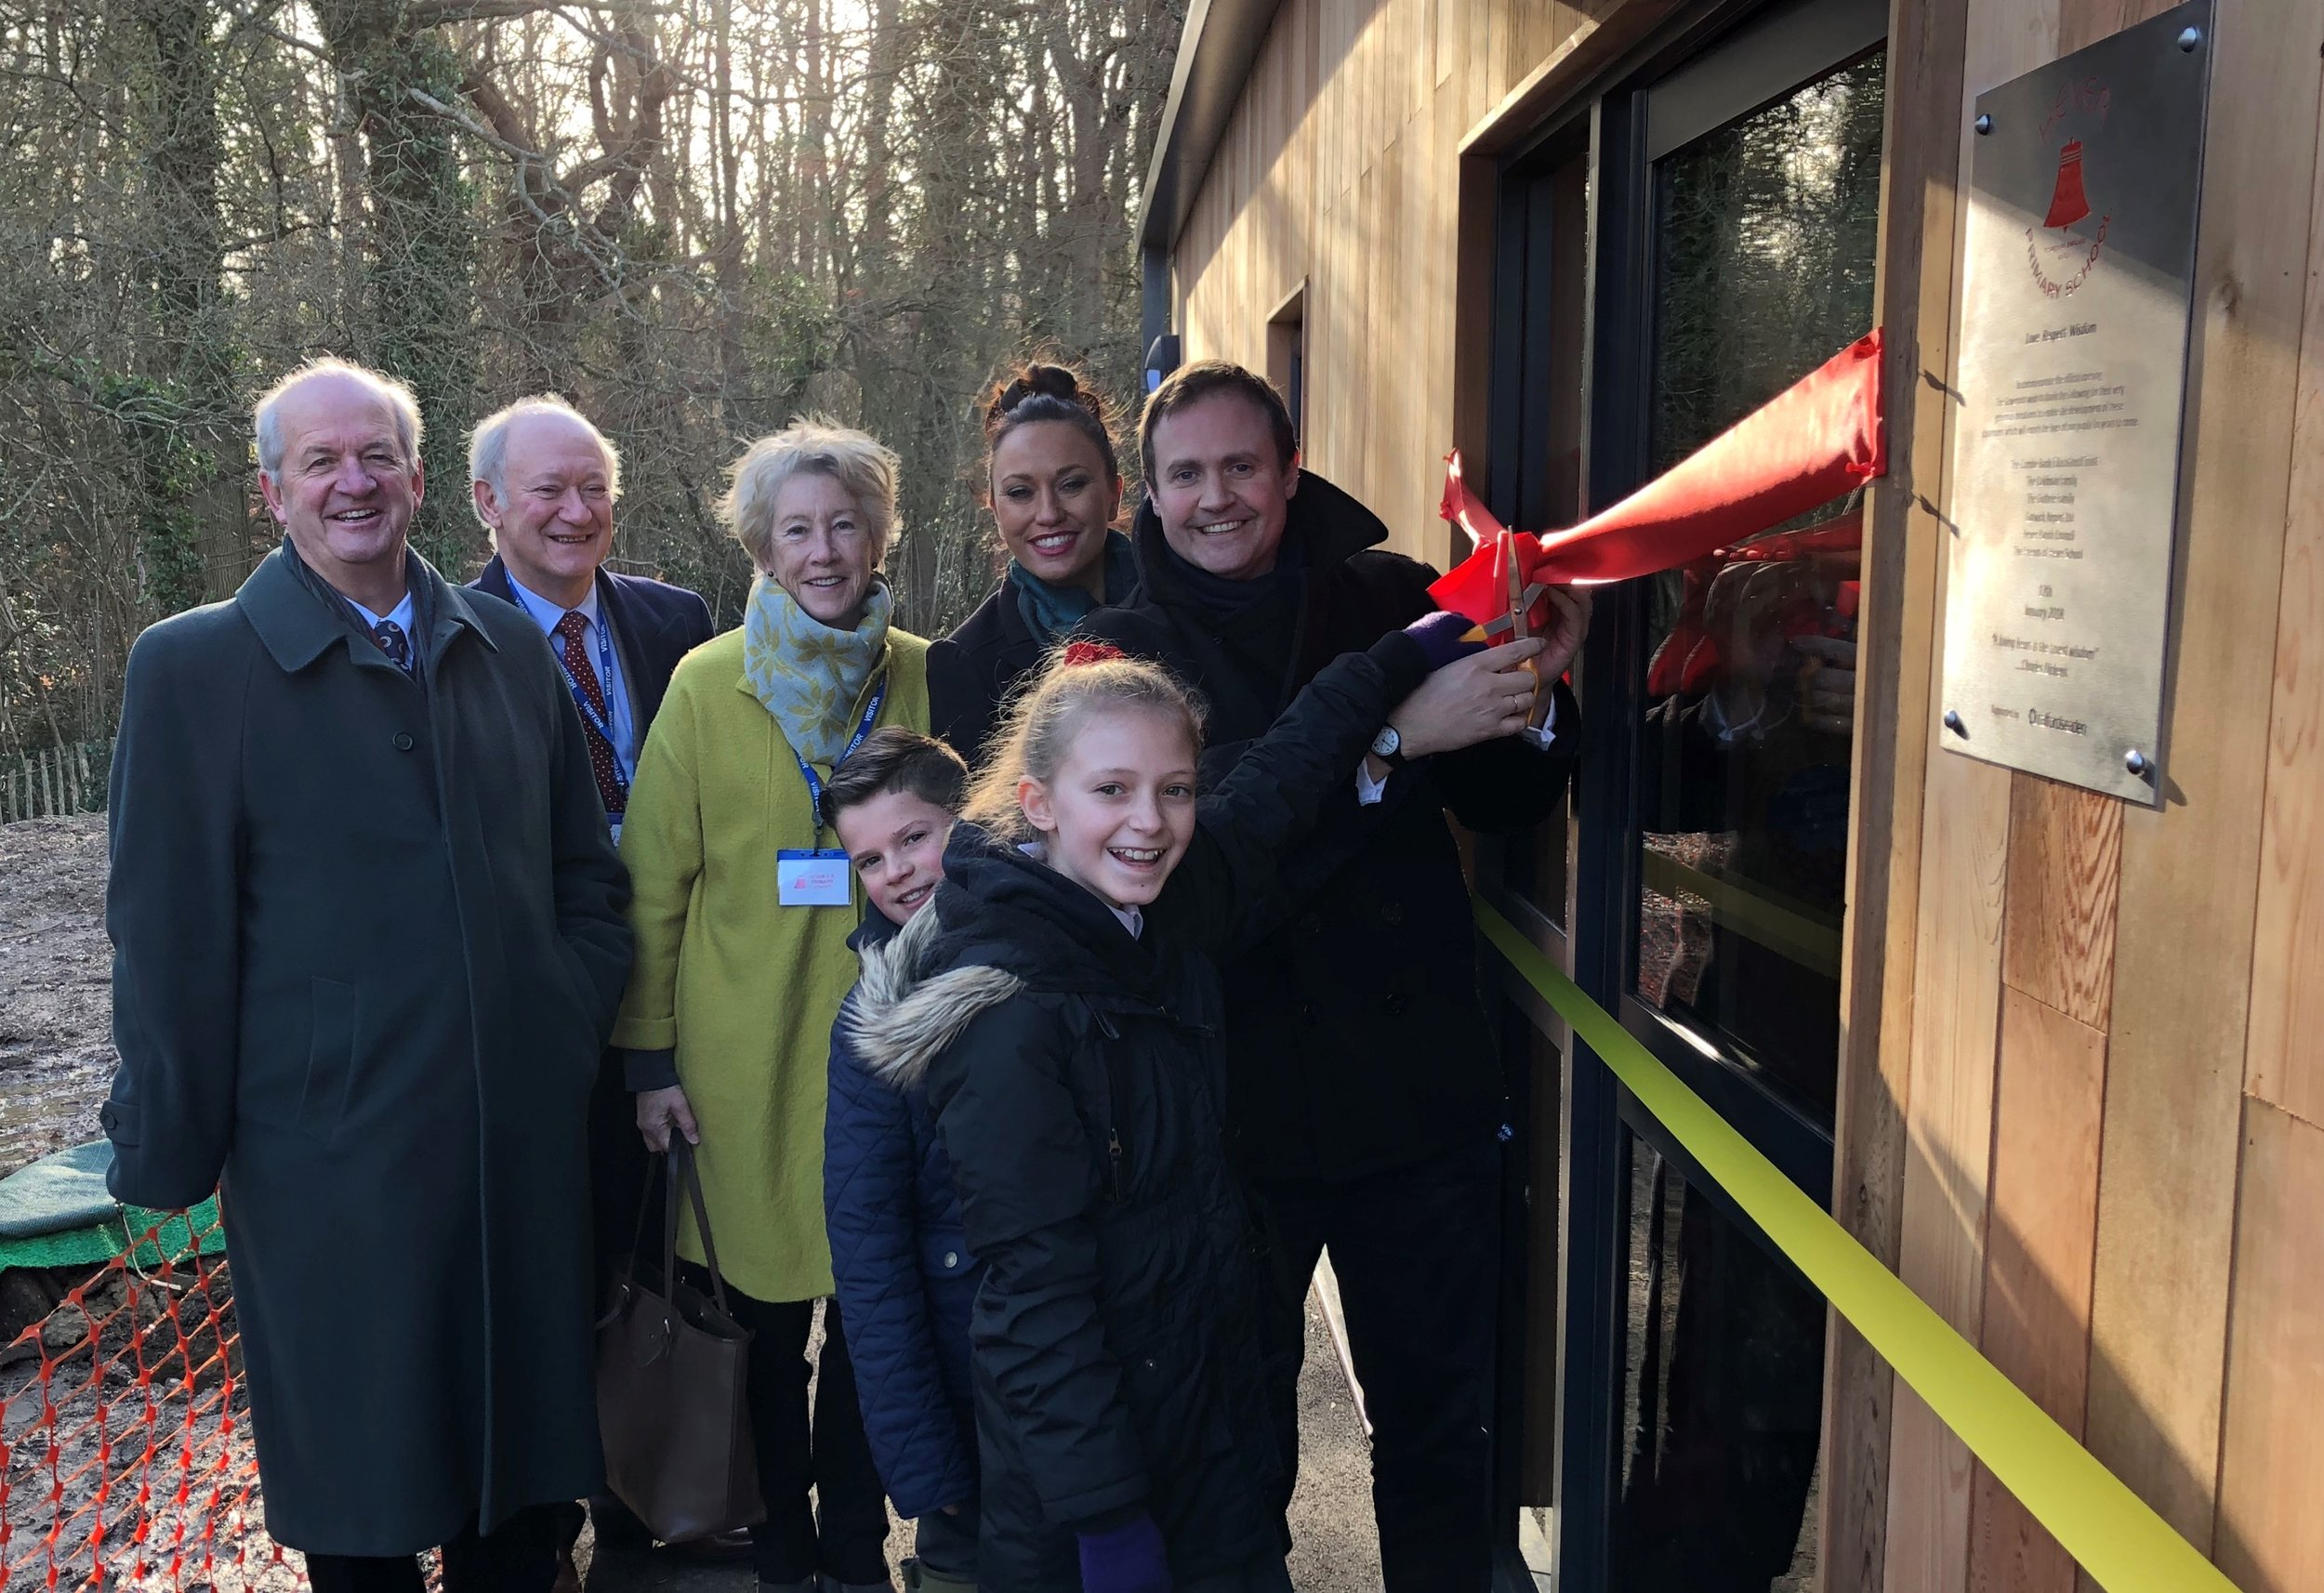 There's nothing like opening new schools to realise the importance of community. It was a huge privilege to open the new classrooms at Hever Primary School this morning and see again what staff, parents, governors and most of all children are doing to build a community and grow the roots that make confident, capable young people.